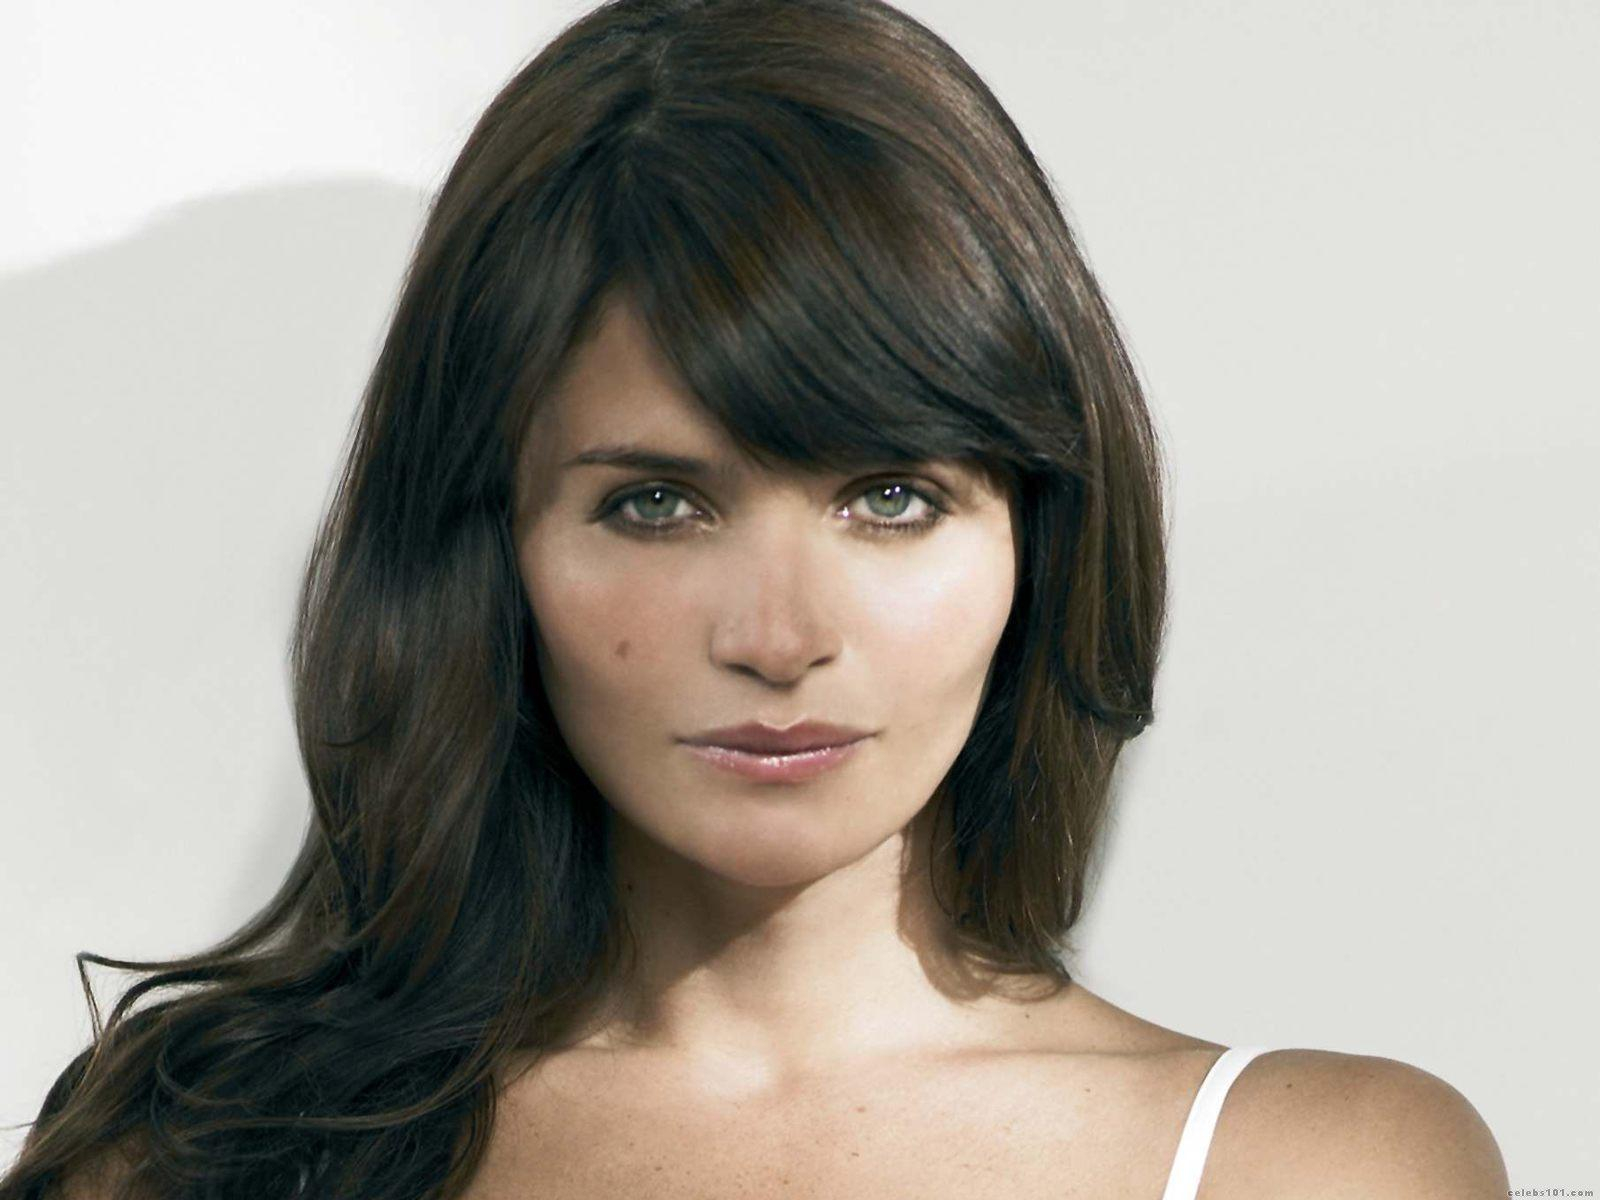 Helena Christensen's quote #6